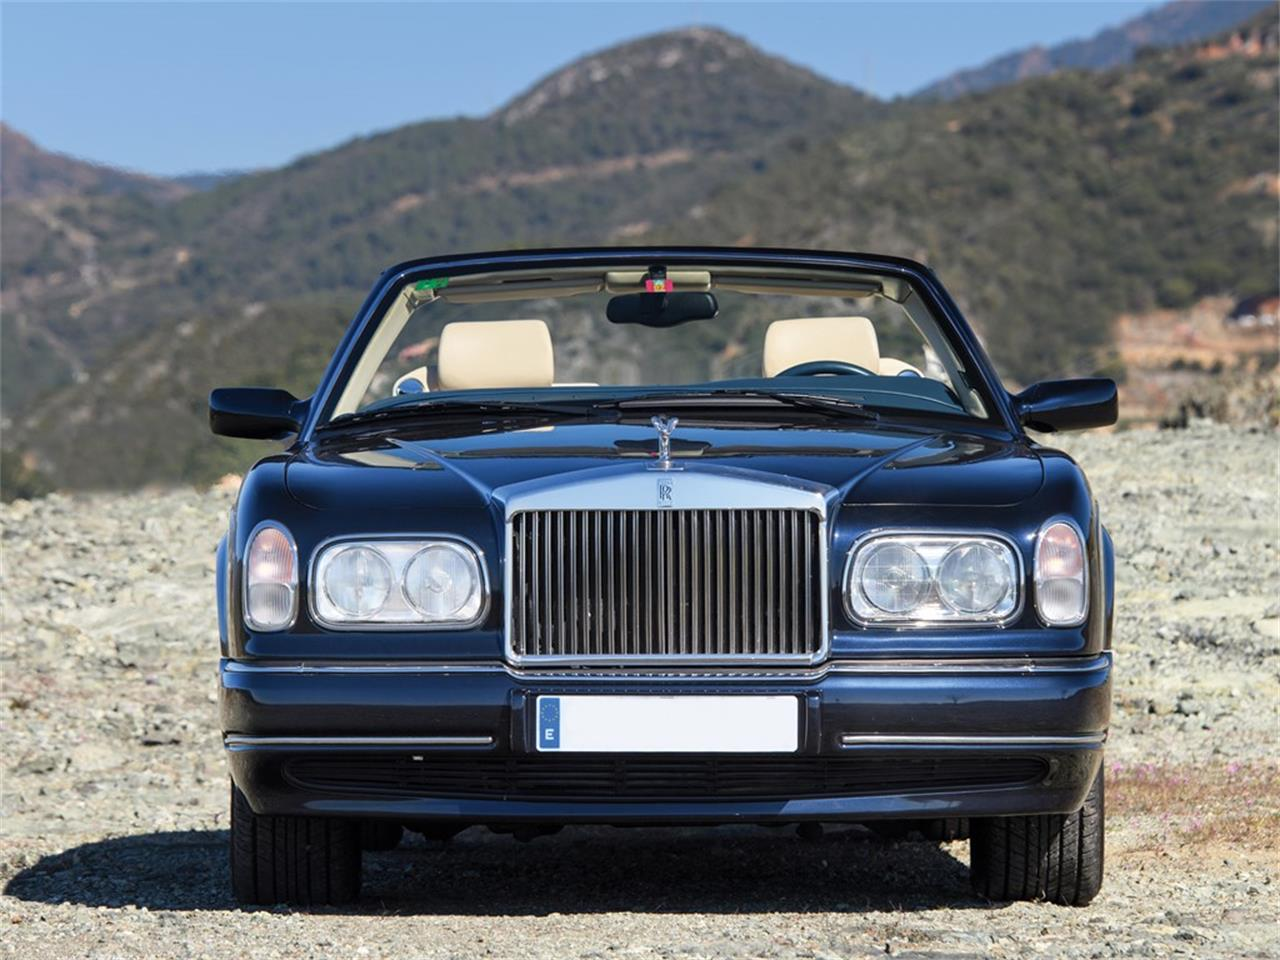 2000 Rolls-Royce Corniche for sale in Essen, Other – photo 7